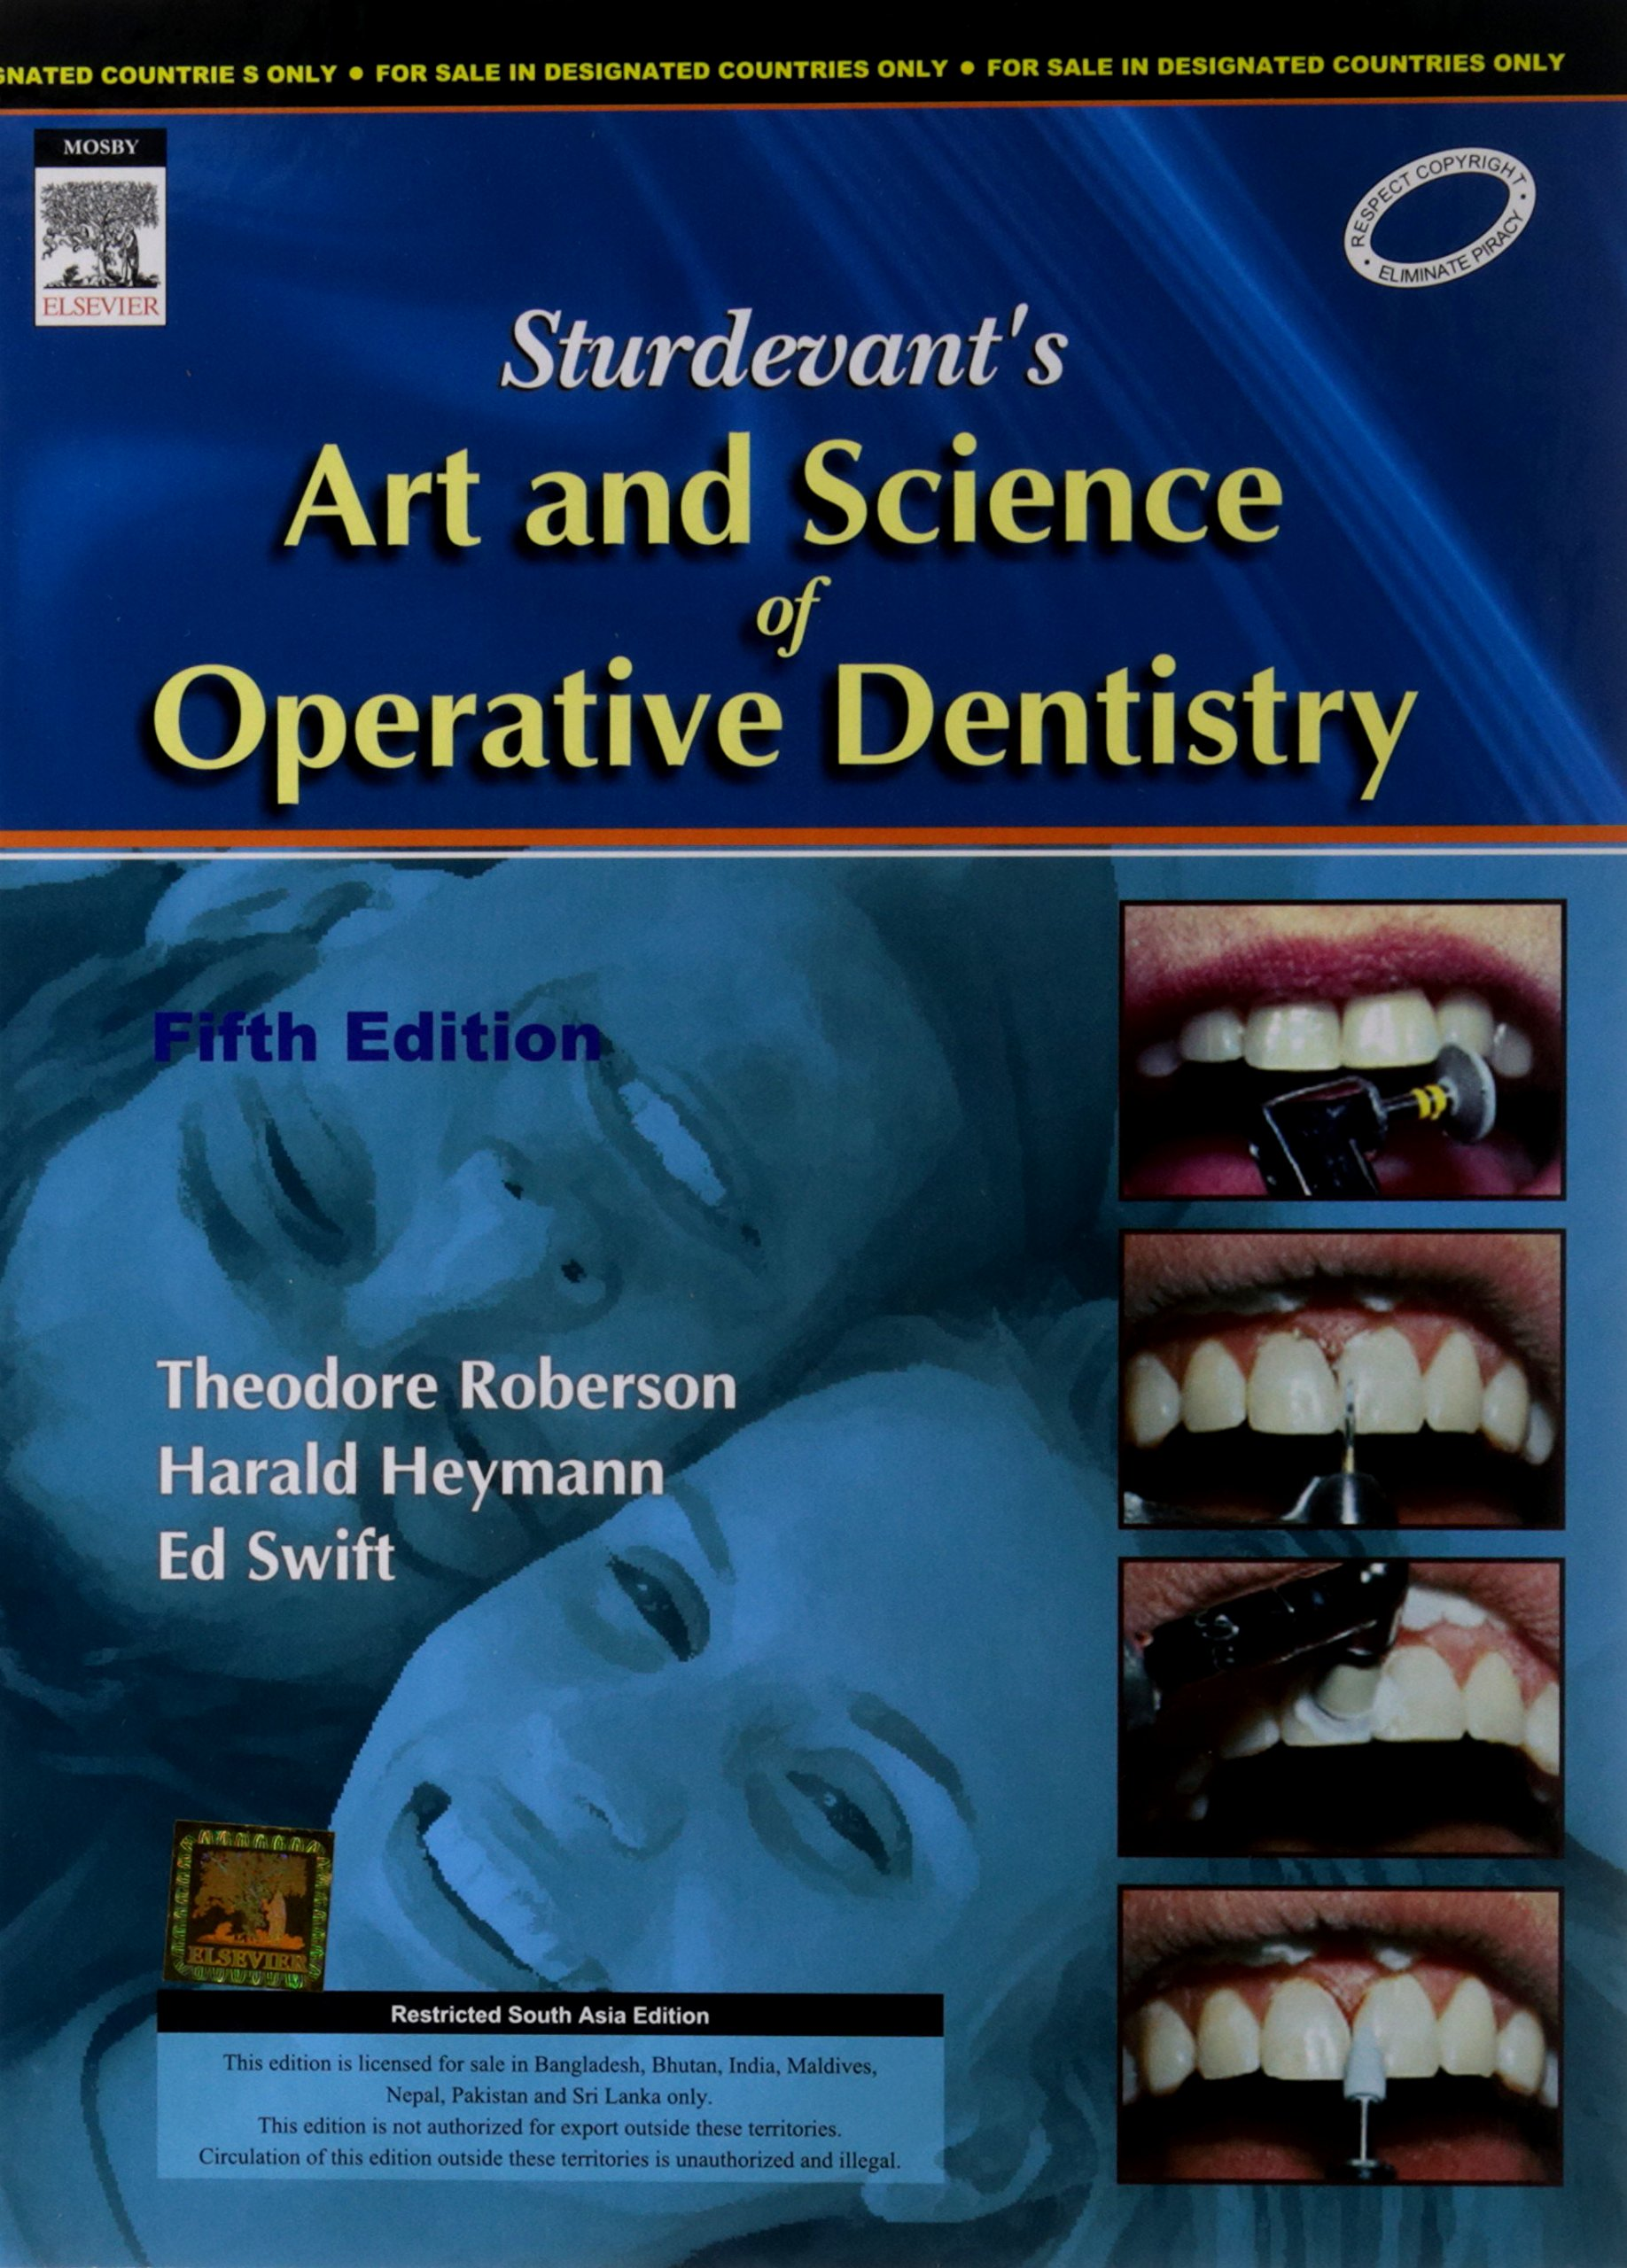 Sturdevant's art and science of operative dentistry (roberson.